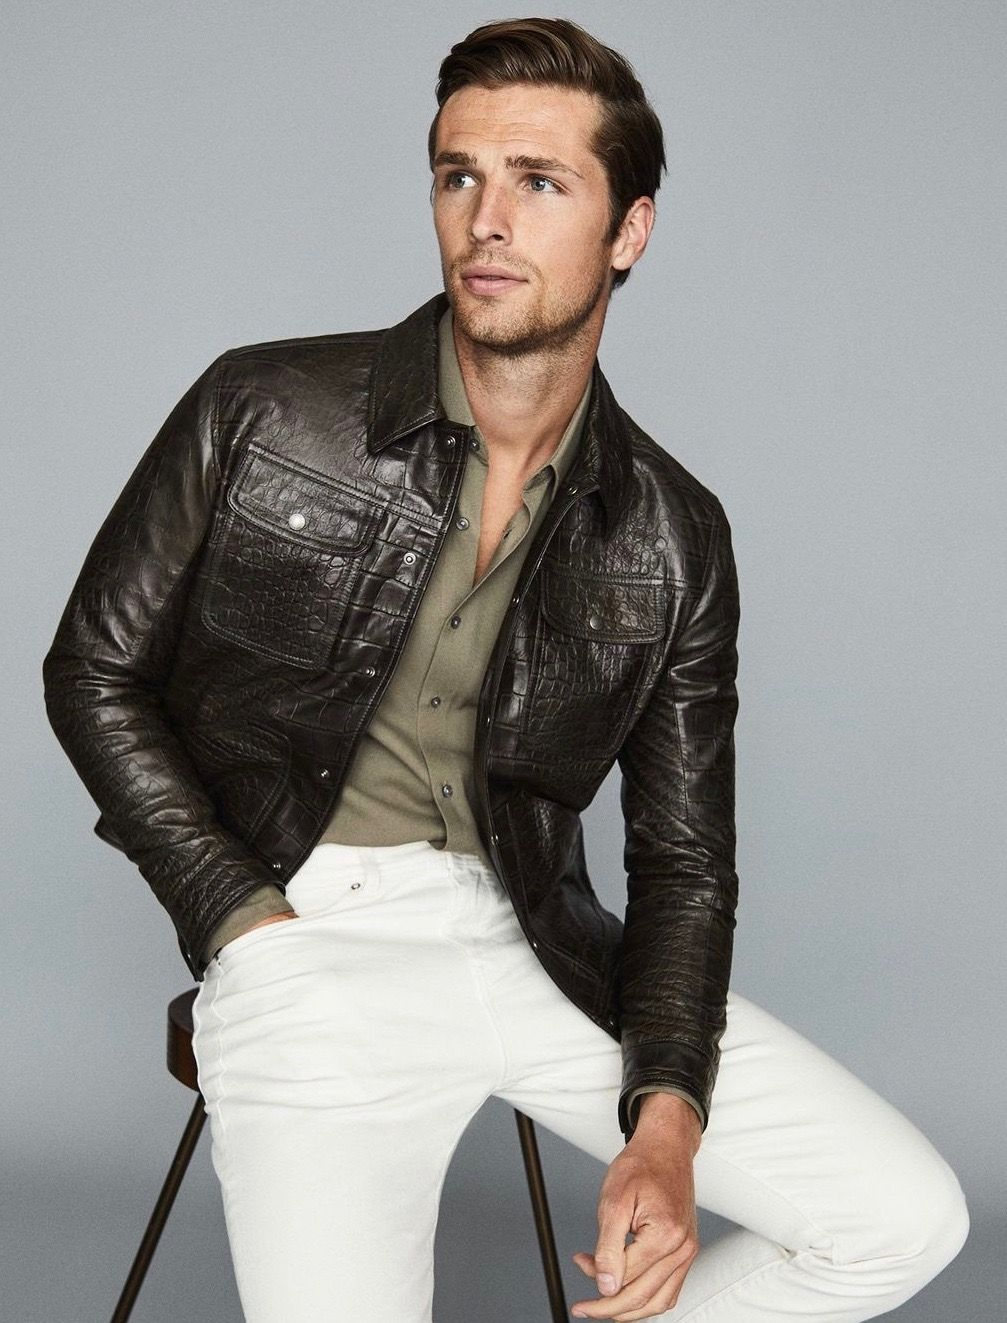 Pin By Dave On Leather Jeans Men Leather Jeans Men Leather Jacket Leather Jacket Style [ 1323 x 1007 Pixel ]